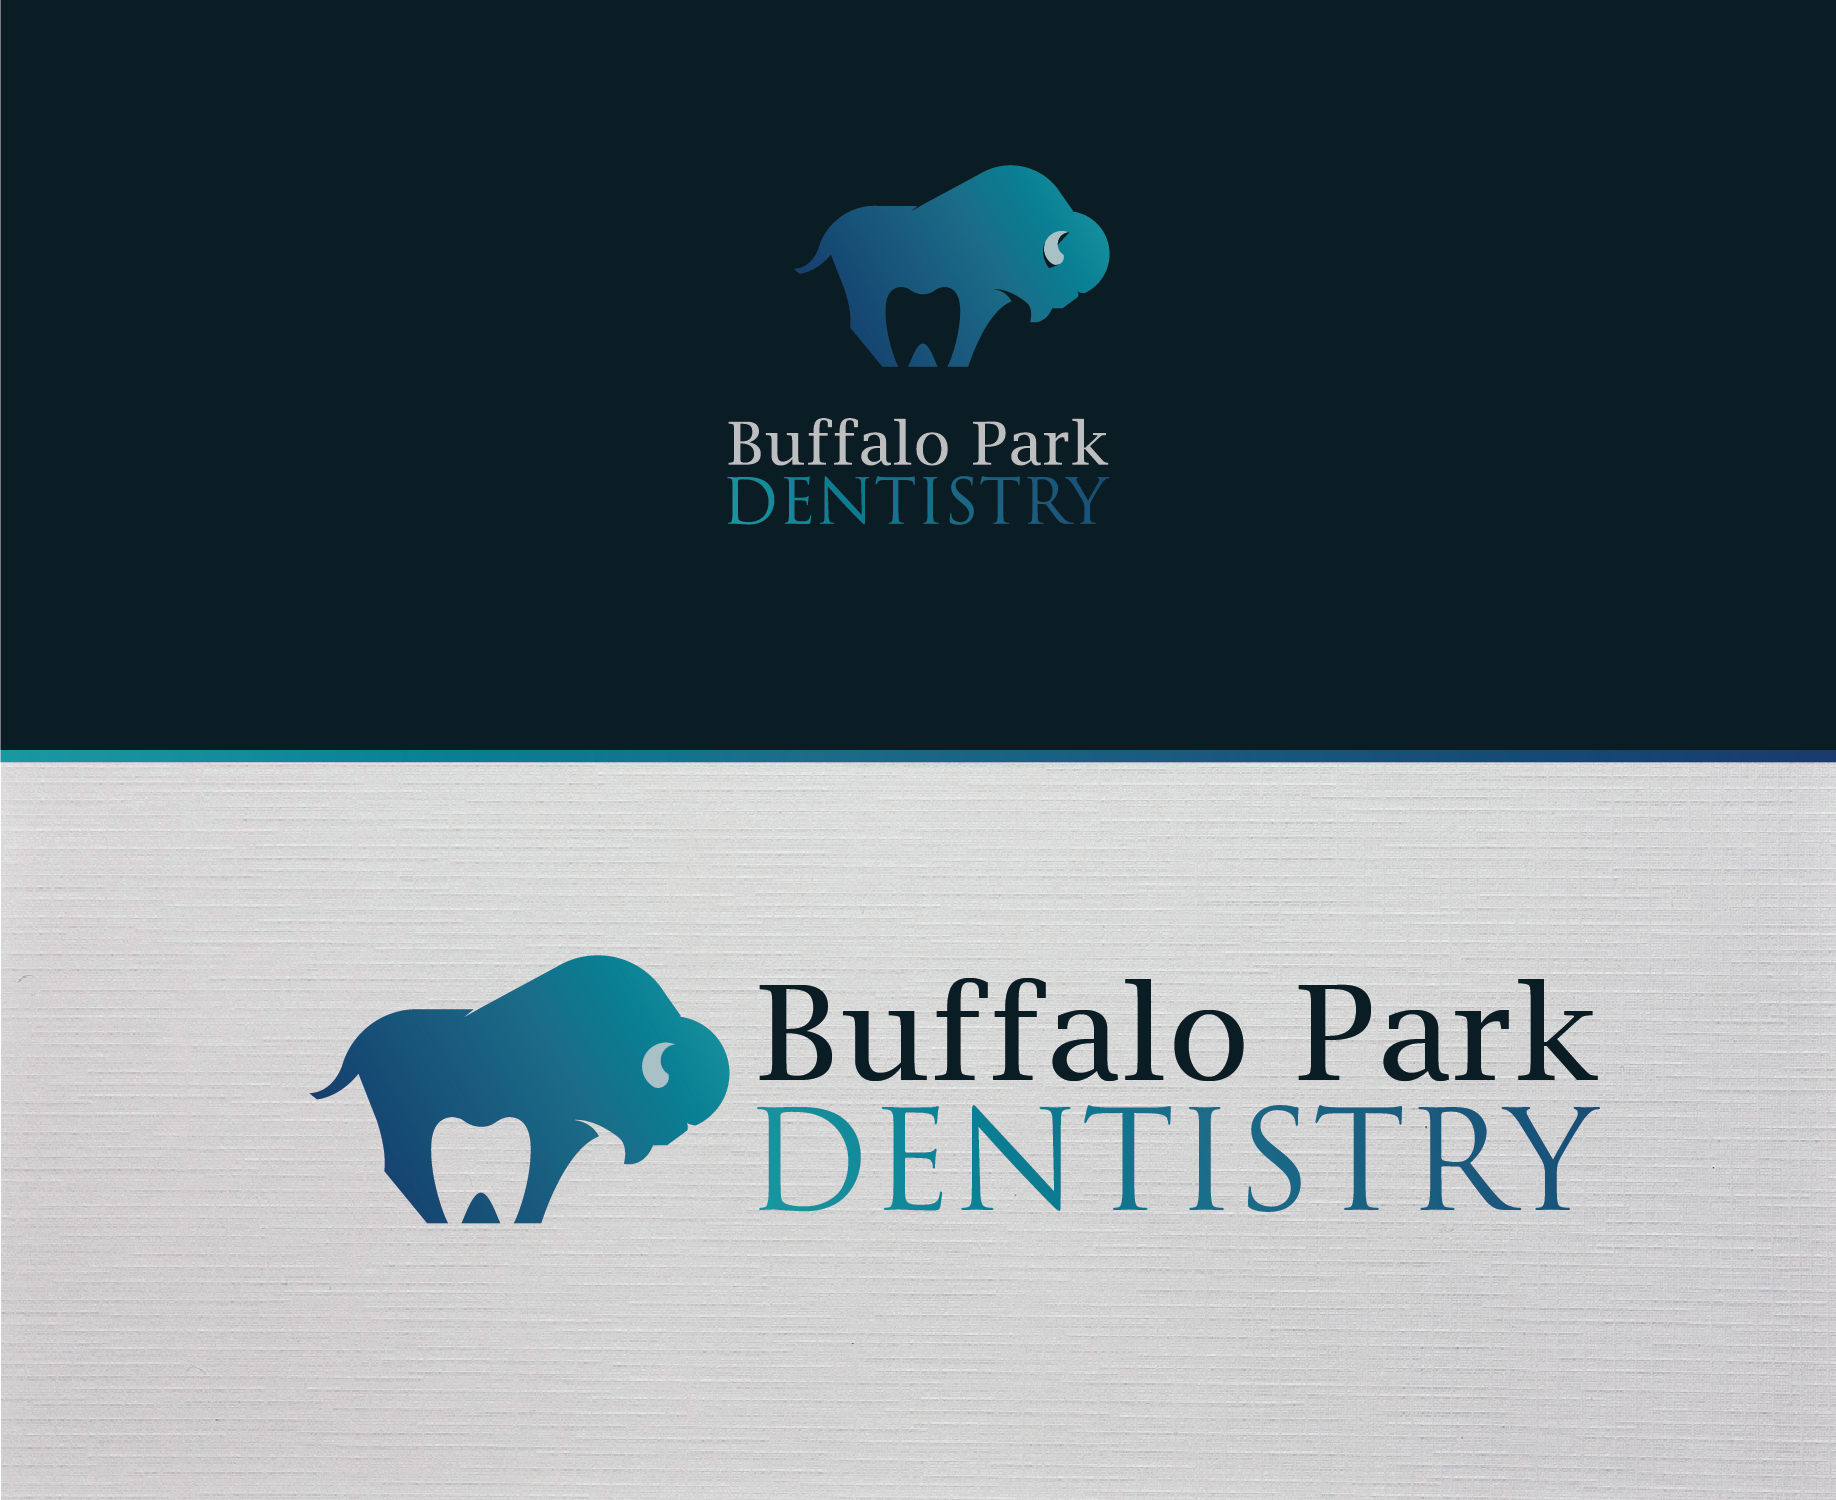 New Dental Practice needs logo!